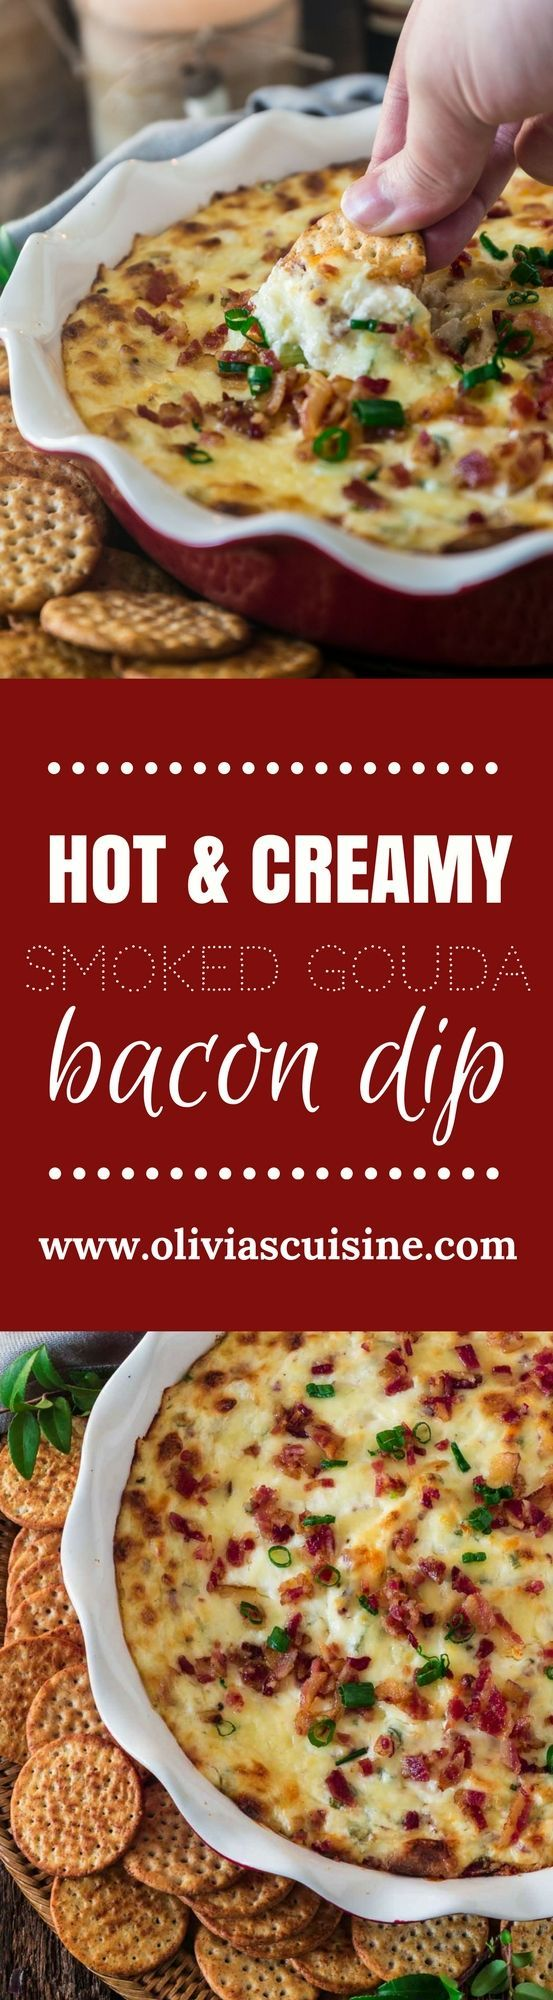 Hot Smoked Gouda Bacon Dip | www.oliviascuisine.com | Creamy, gooey and loaded with everyone's favorite ingredient, bacon, this Hot Smoked Gouda Bacon Dip is destined to be the star of your holiday party! Pair it with some good wine and you're on the road to success. (Sponsored by @Cavit.)